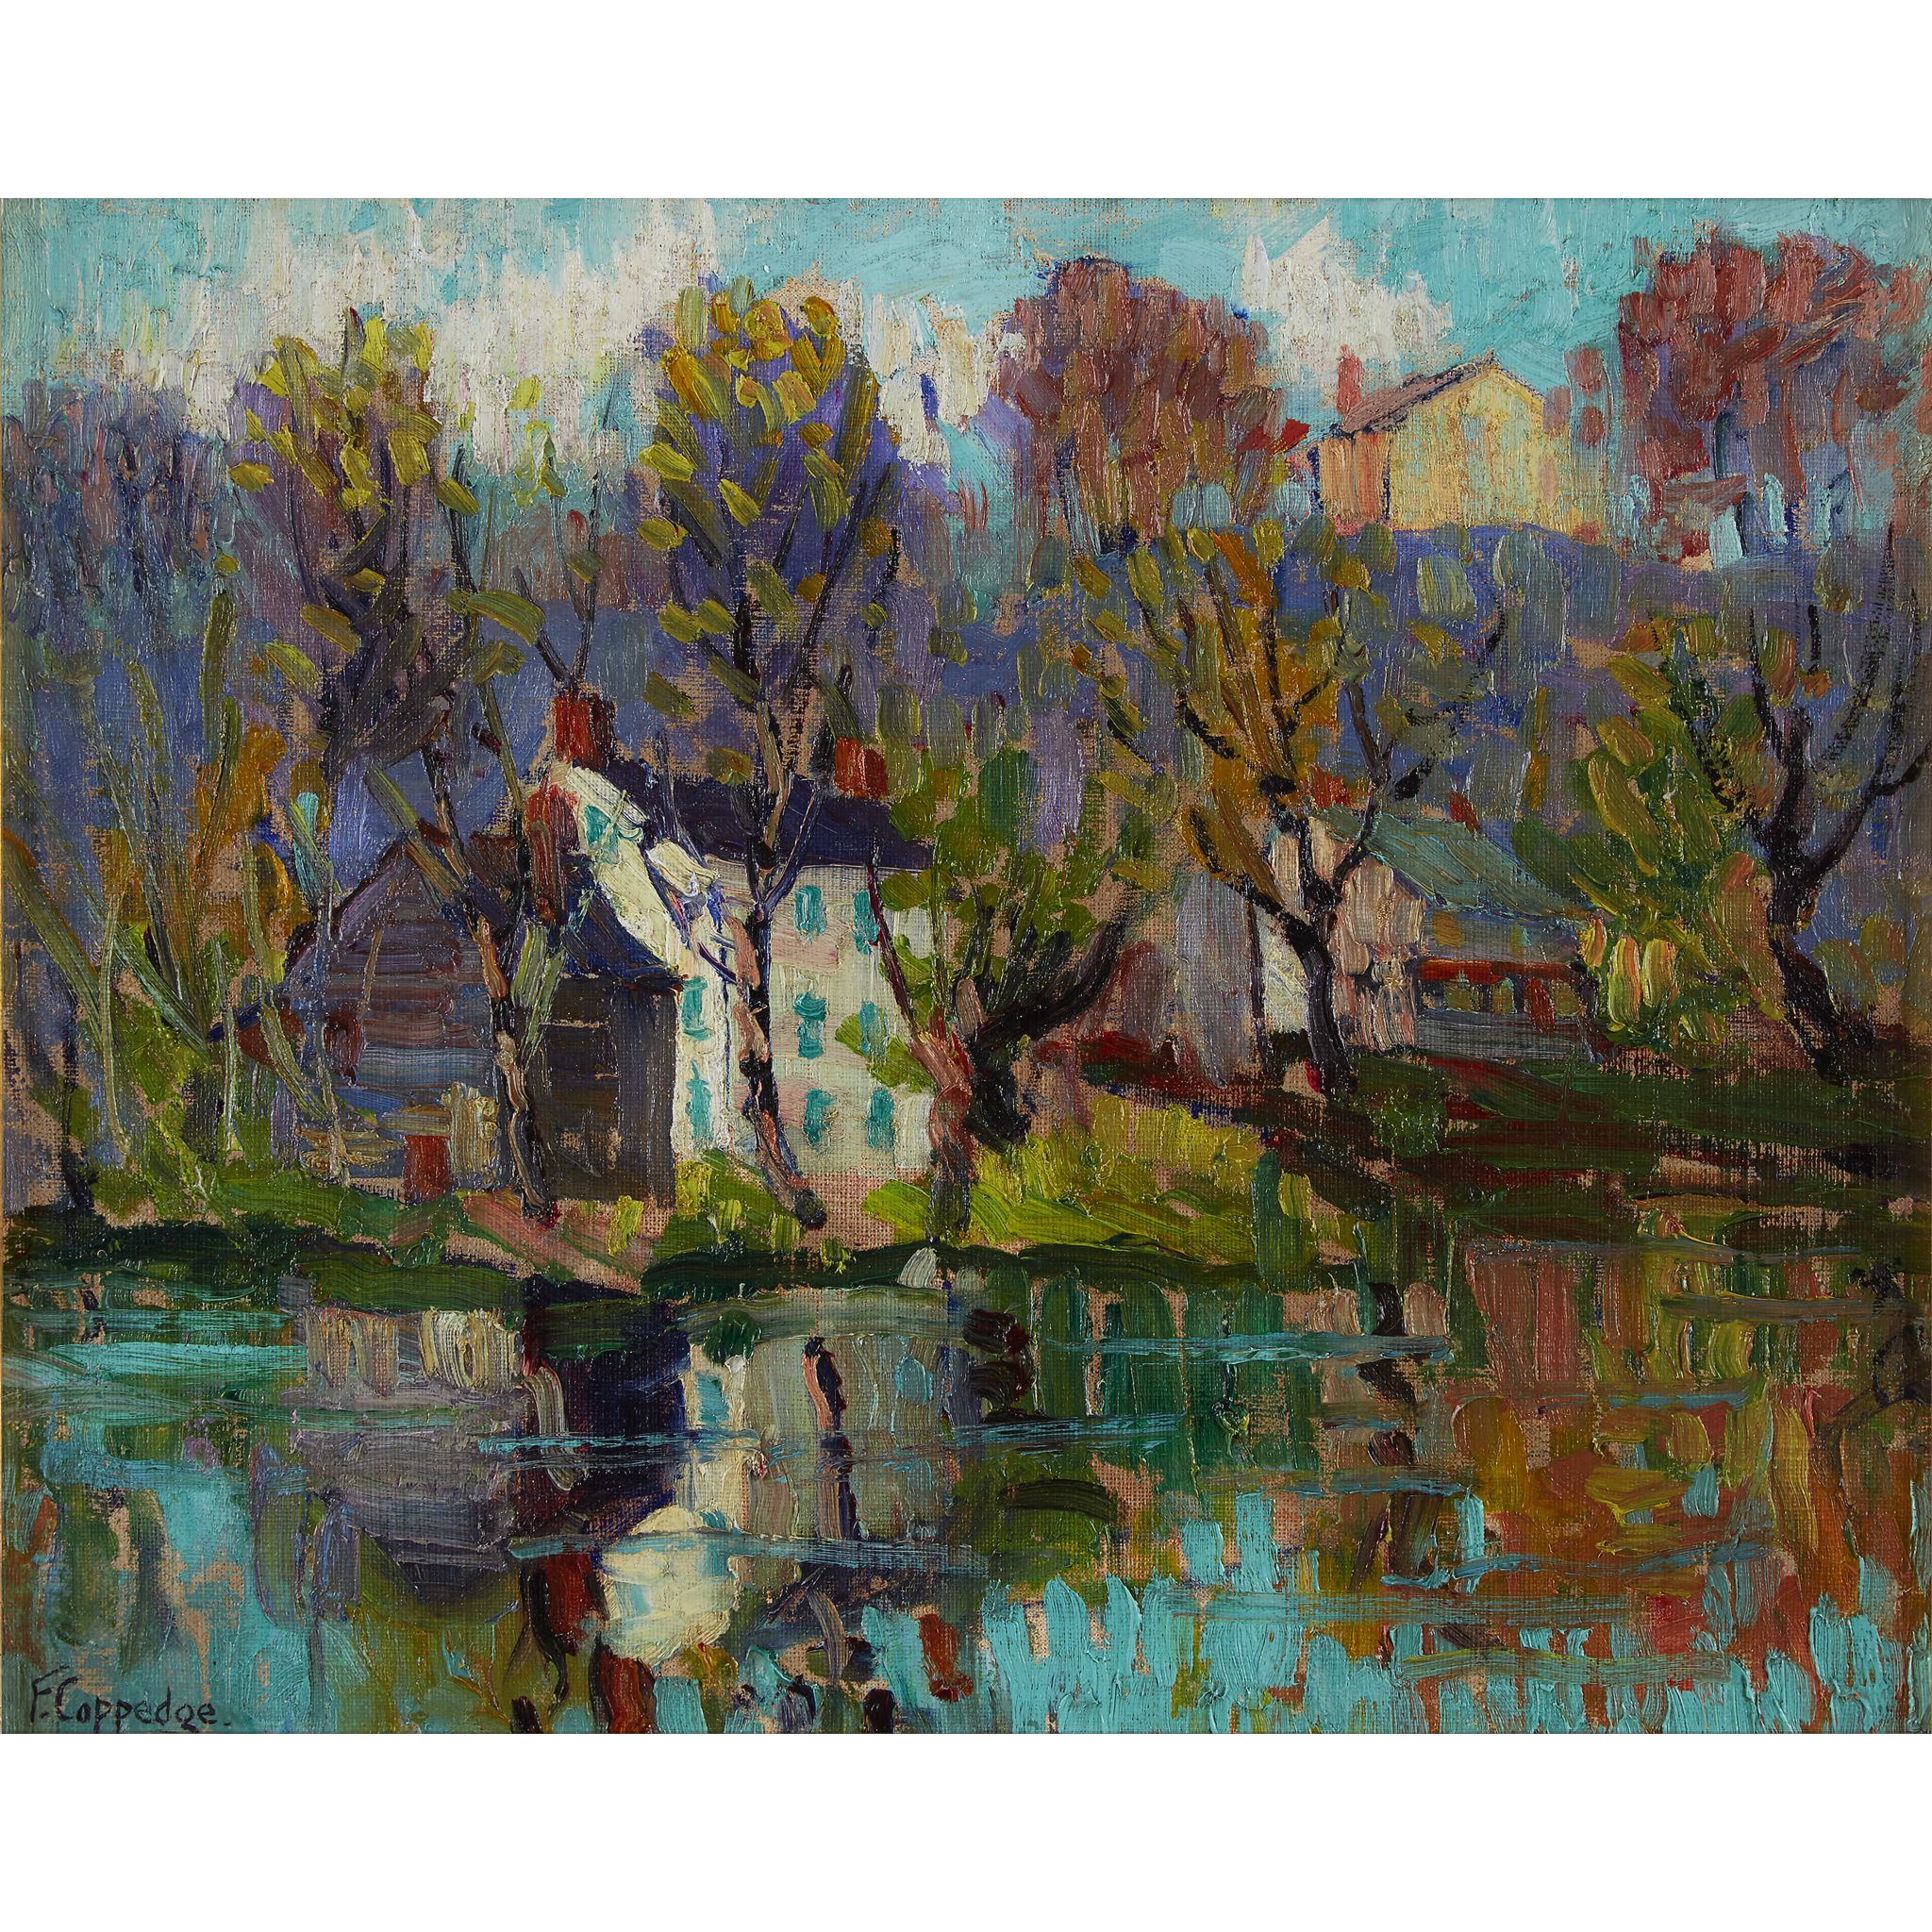 Reflections October Fern Coppedge Oil On Canvas Laid To Board 12 7 8 X 16 Private Collection Fine Art Landscape Art Pennsylvania Impressionist